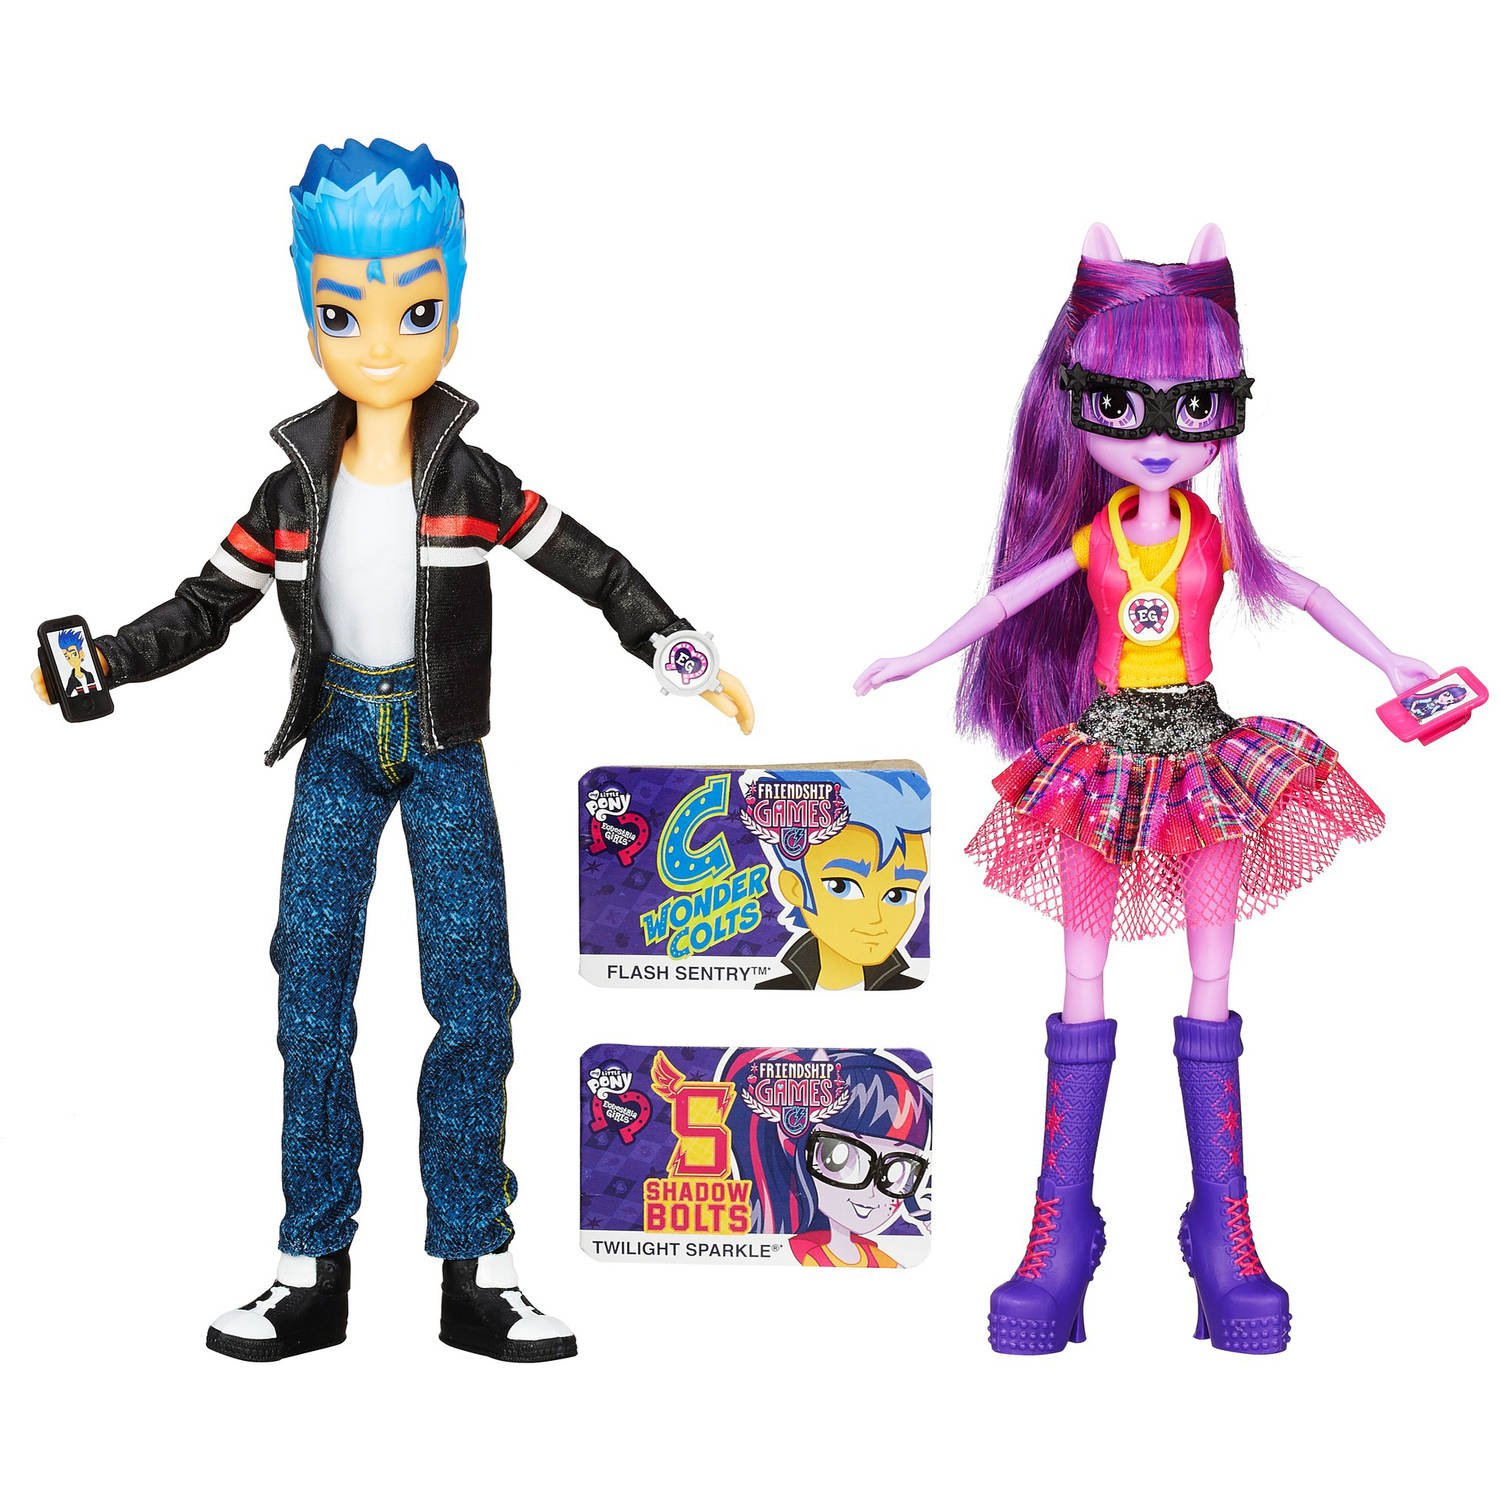 My Little Pony Equestria Girls Flash Sentry and Twilight Sparkle 2-Pack